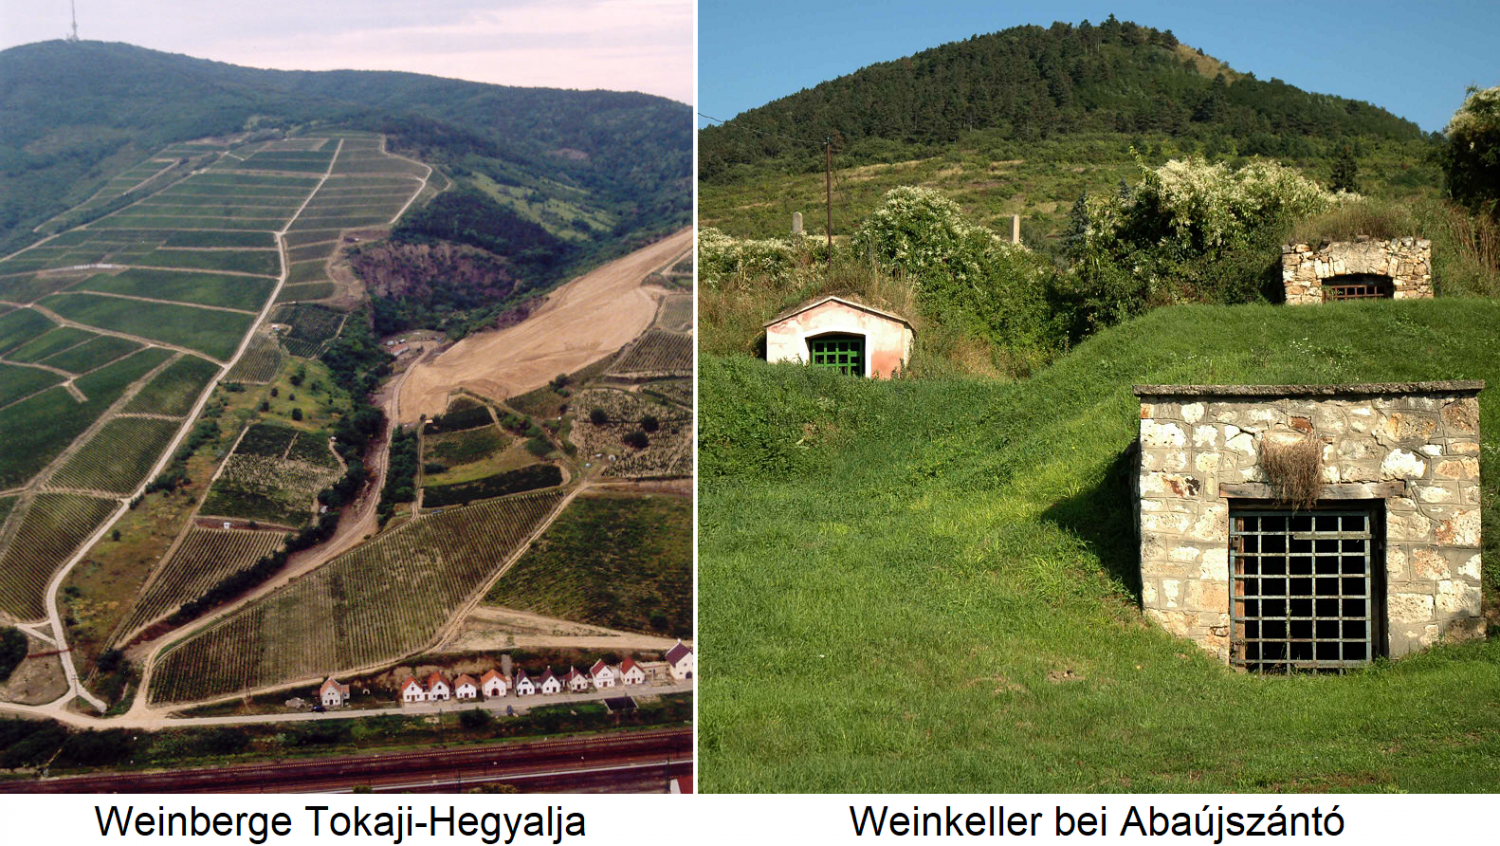 Tokajer - Tokaji-Hegyalja vineyards and wine cellar near Abaújszántó